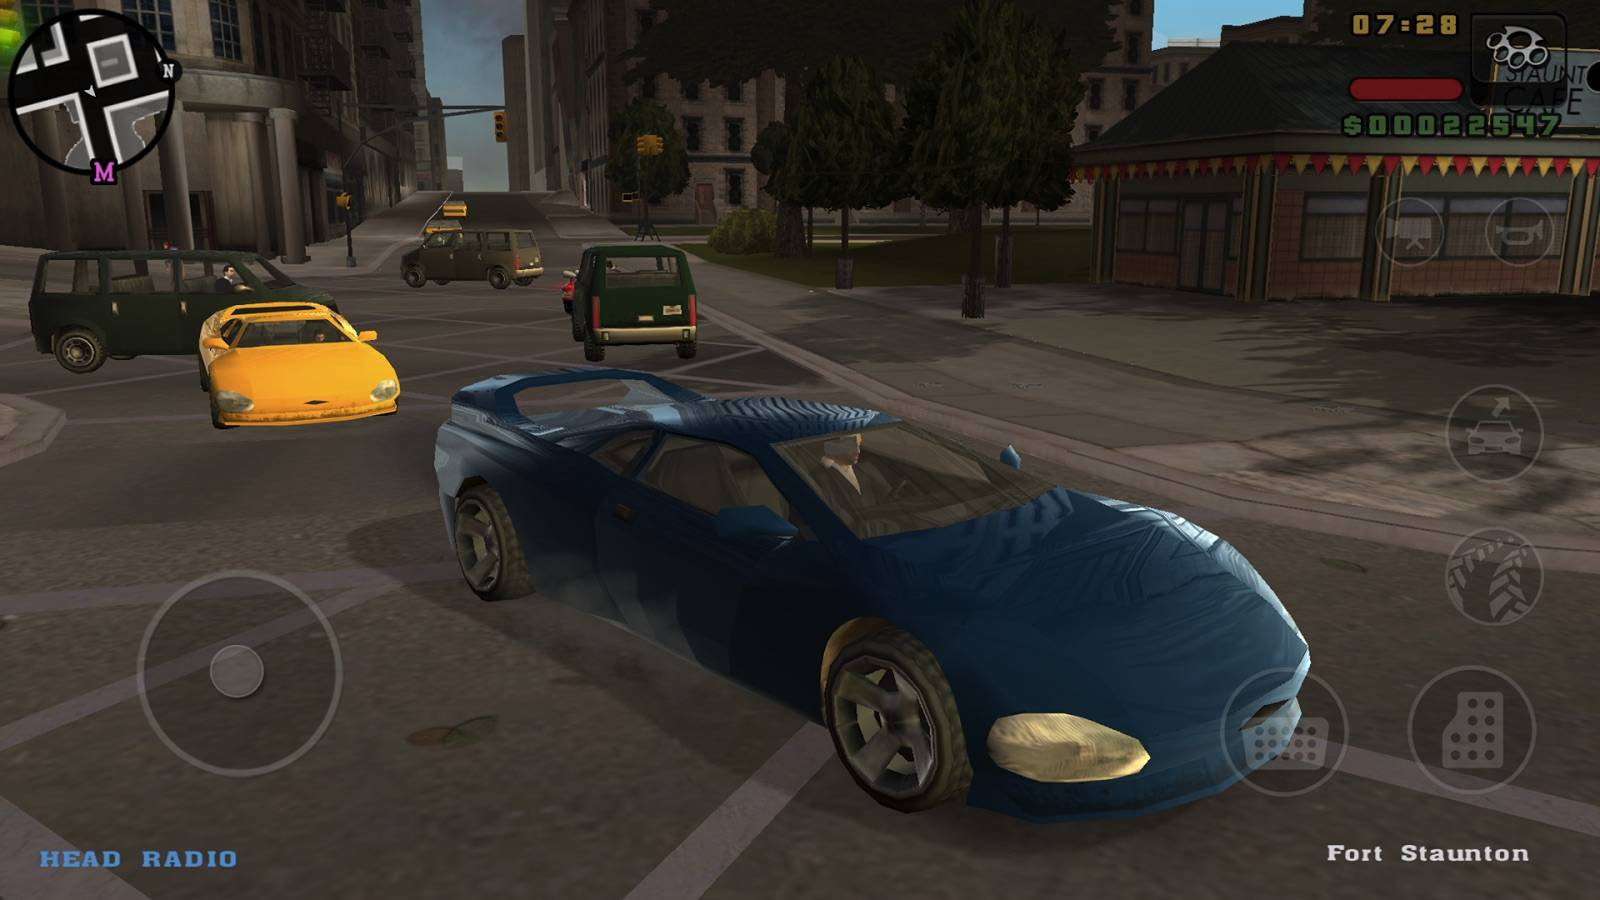 GTA: Liberty City Stories' arrives on Android with shorter